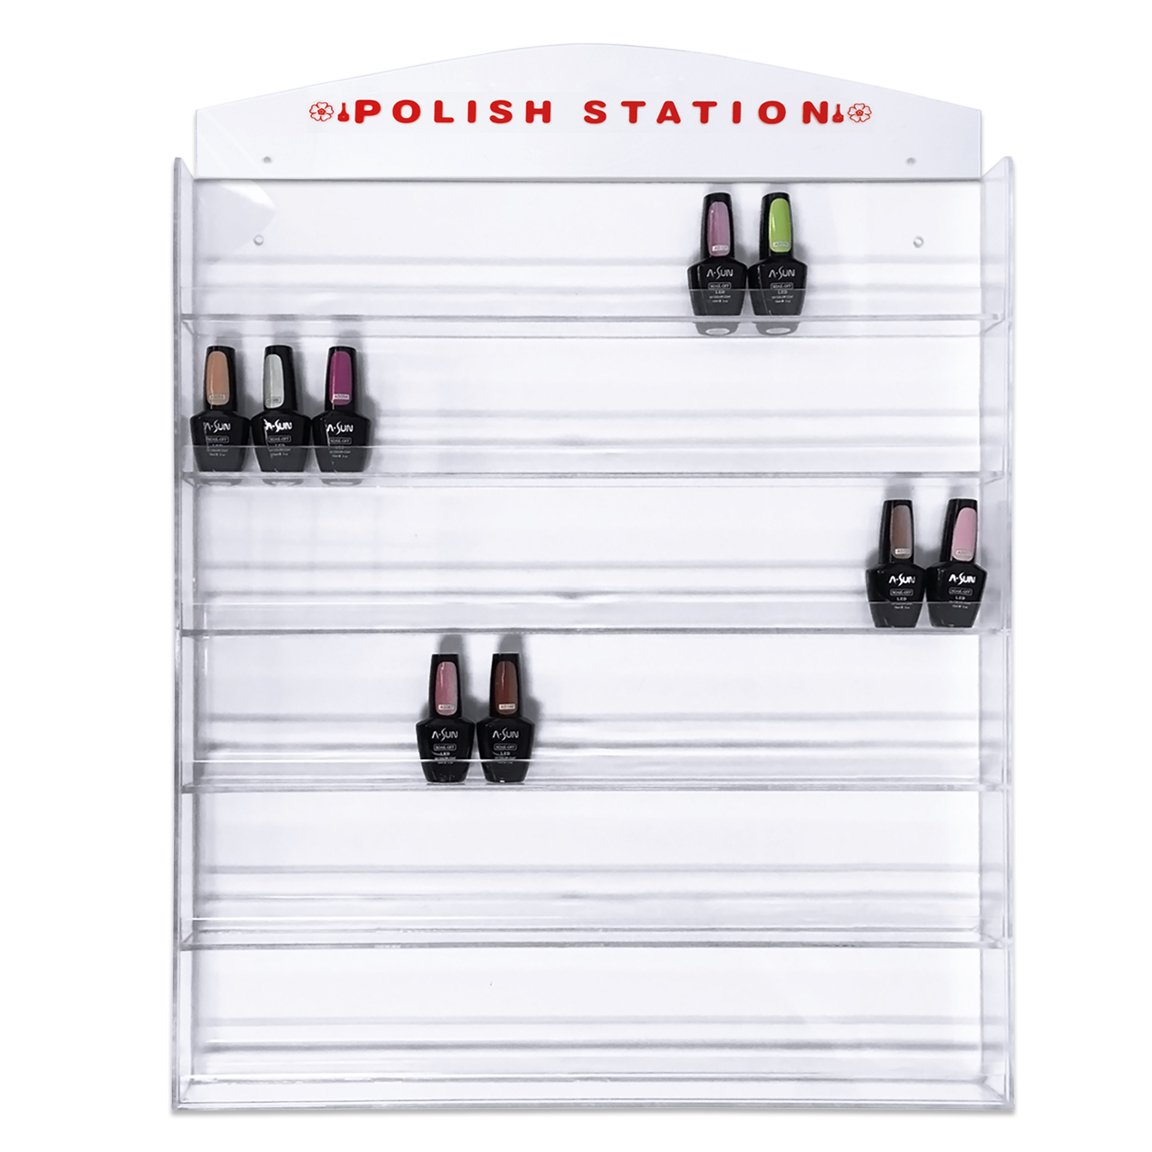 Nail Polish Wall Mounted Organizer Display Transparent Clear Wall Rack – Hold up to 126 bottles Famous USA Fuji Brand Perfect for Birthday Christmas Valentine Gift